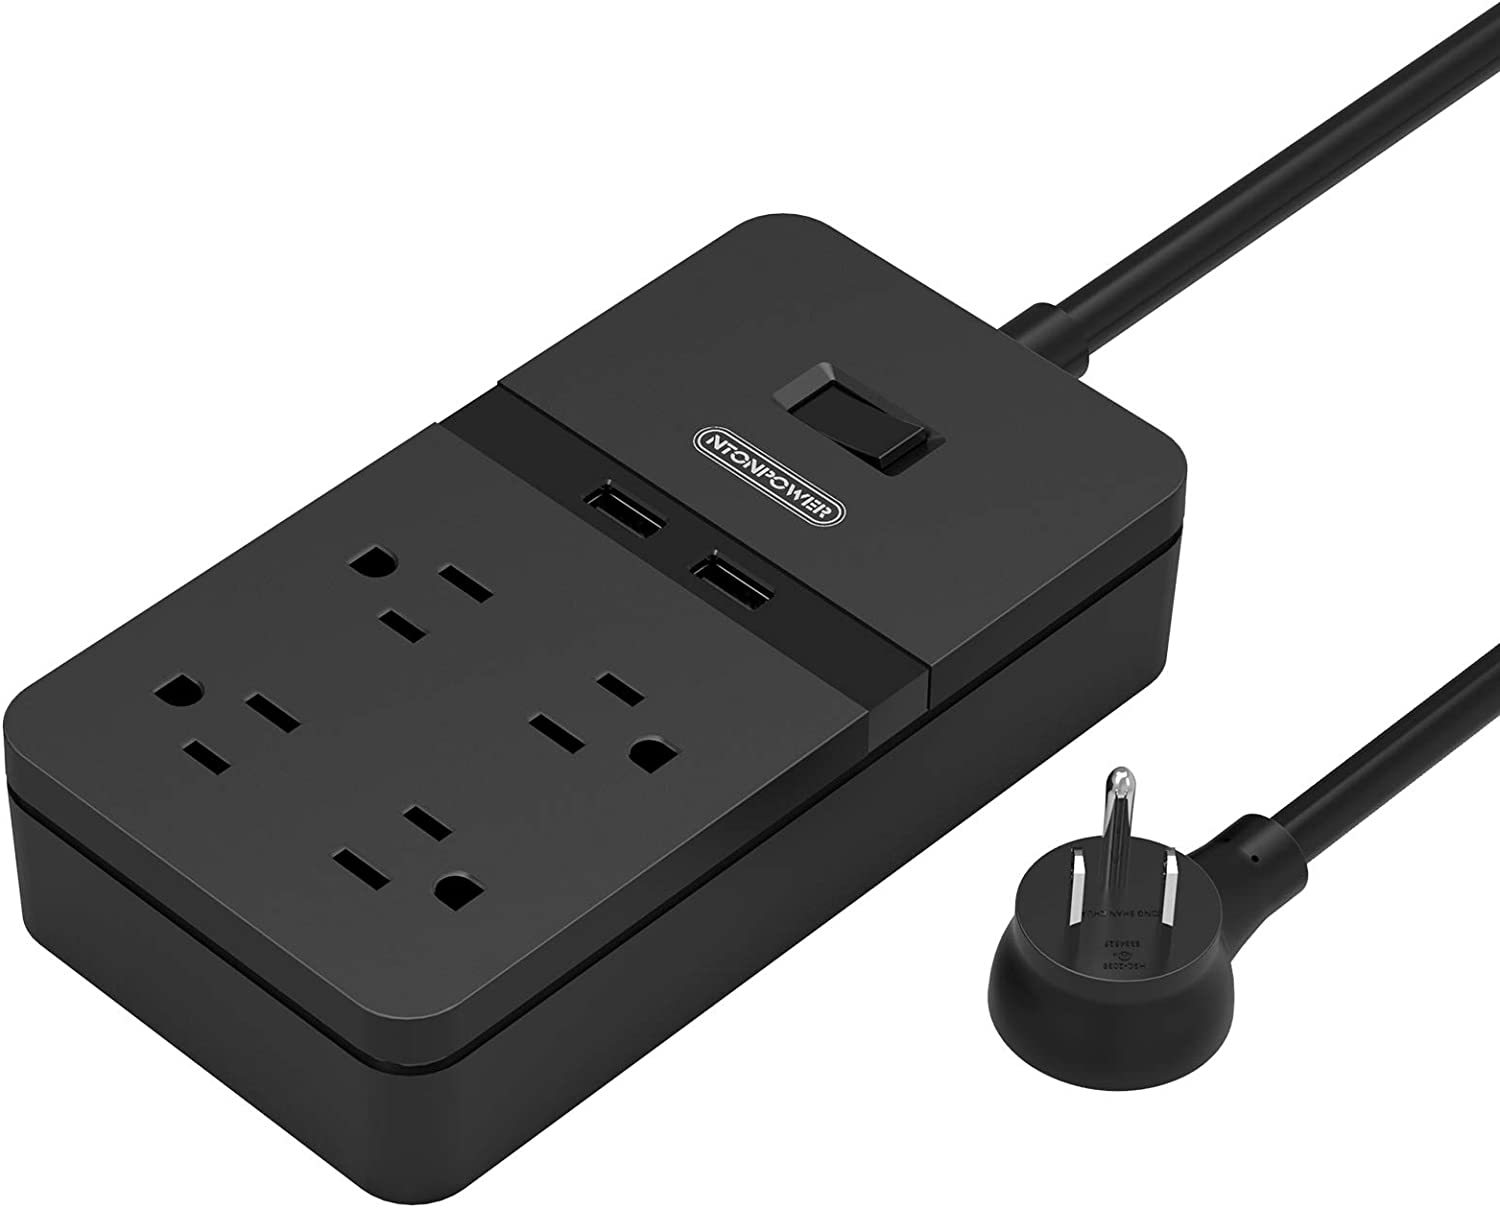 Flat Plug Power Strip with USB - NTONPOWER Mountable Surge Protector Flat Plug, 4 Outlets 2 USB Desktop Charging Station, 5ft Heavy Duty Extension Cord, 15A Circuit Breaker for Home and Office - Black